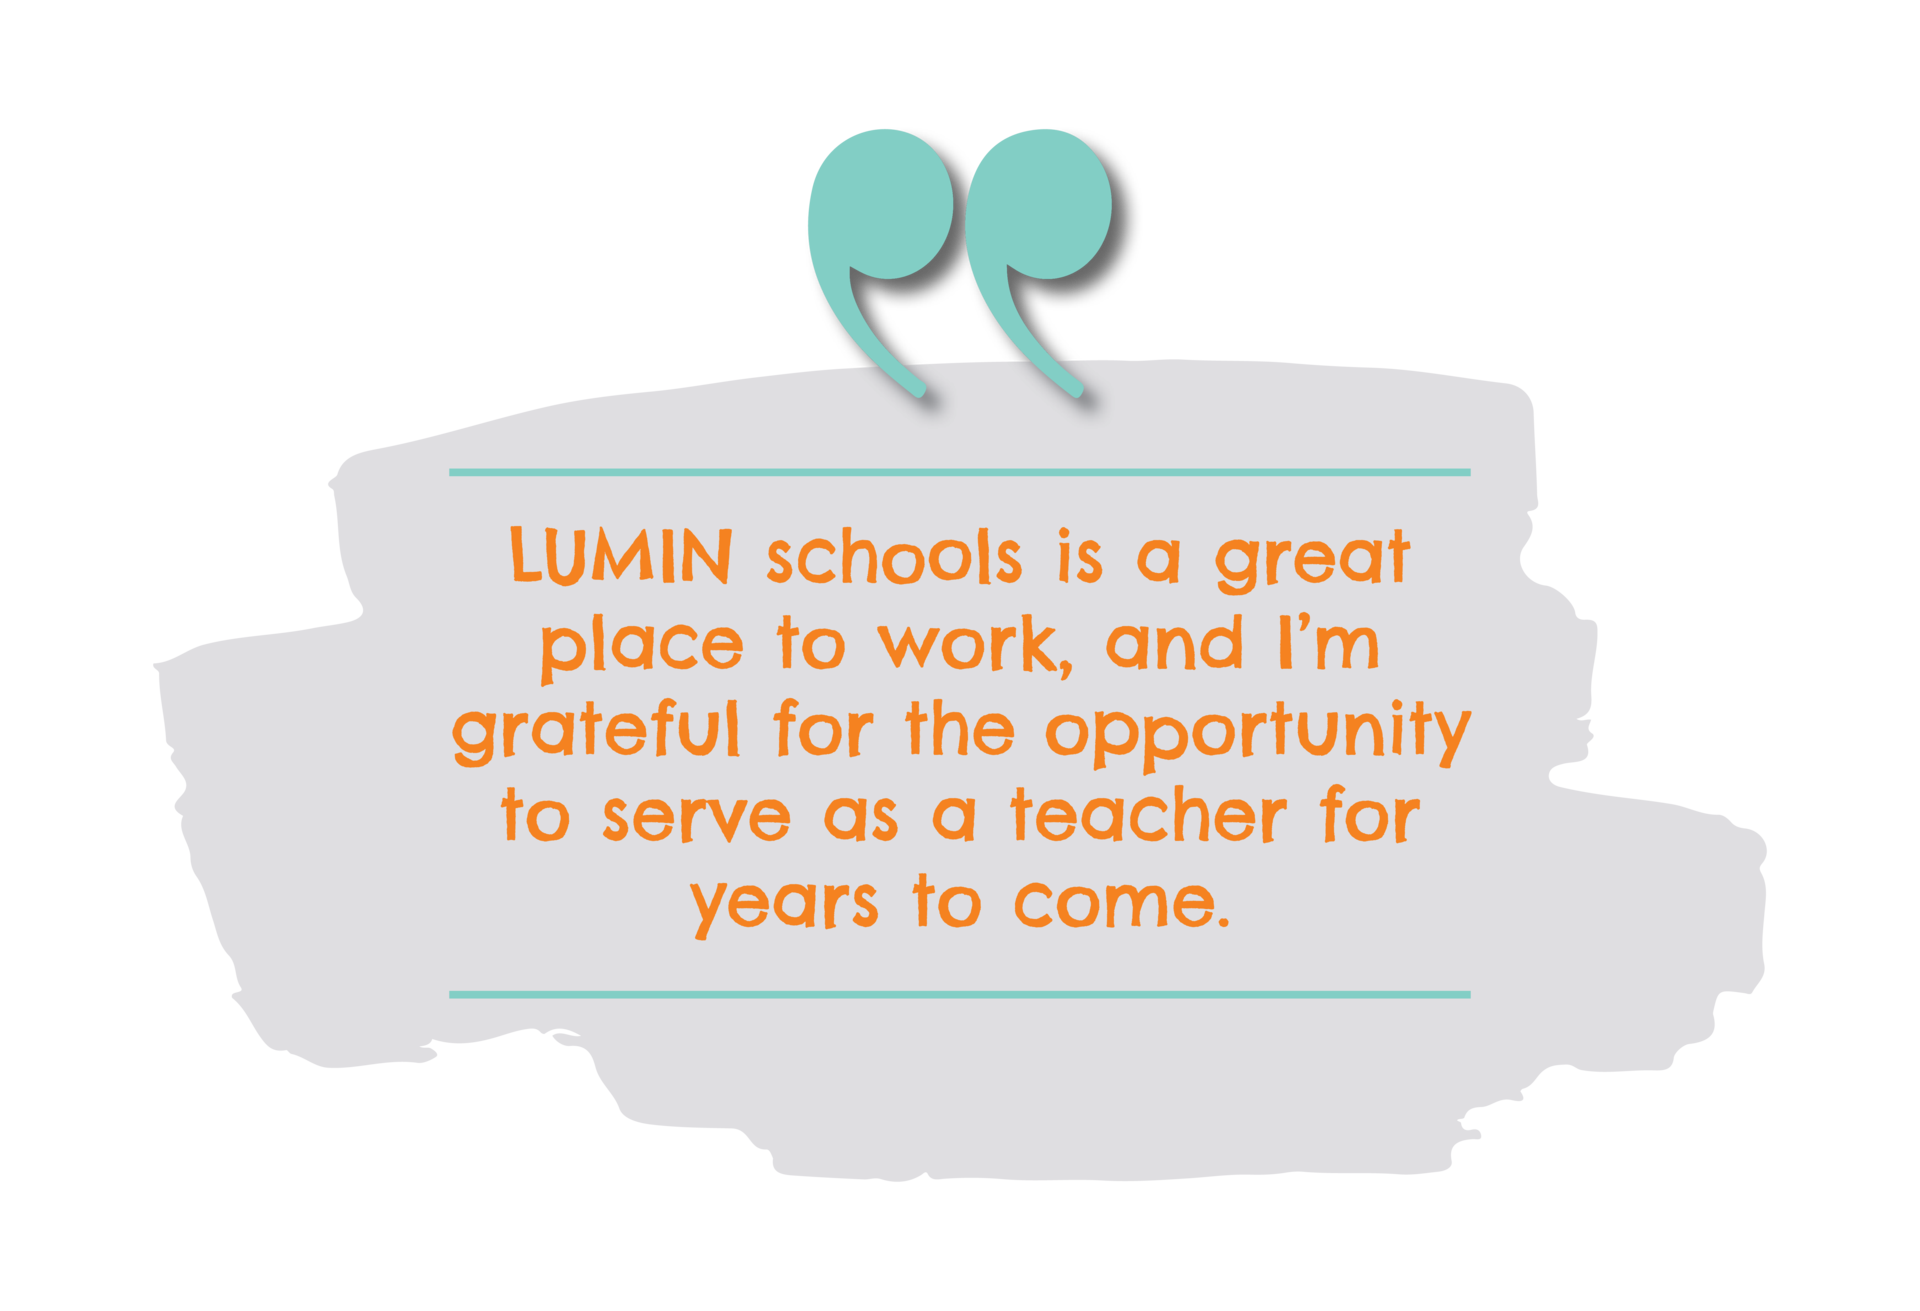 LUMIN schools is a great place to work, and I'm grateful for the opportunity to serve as a teacher for years to come.